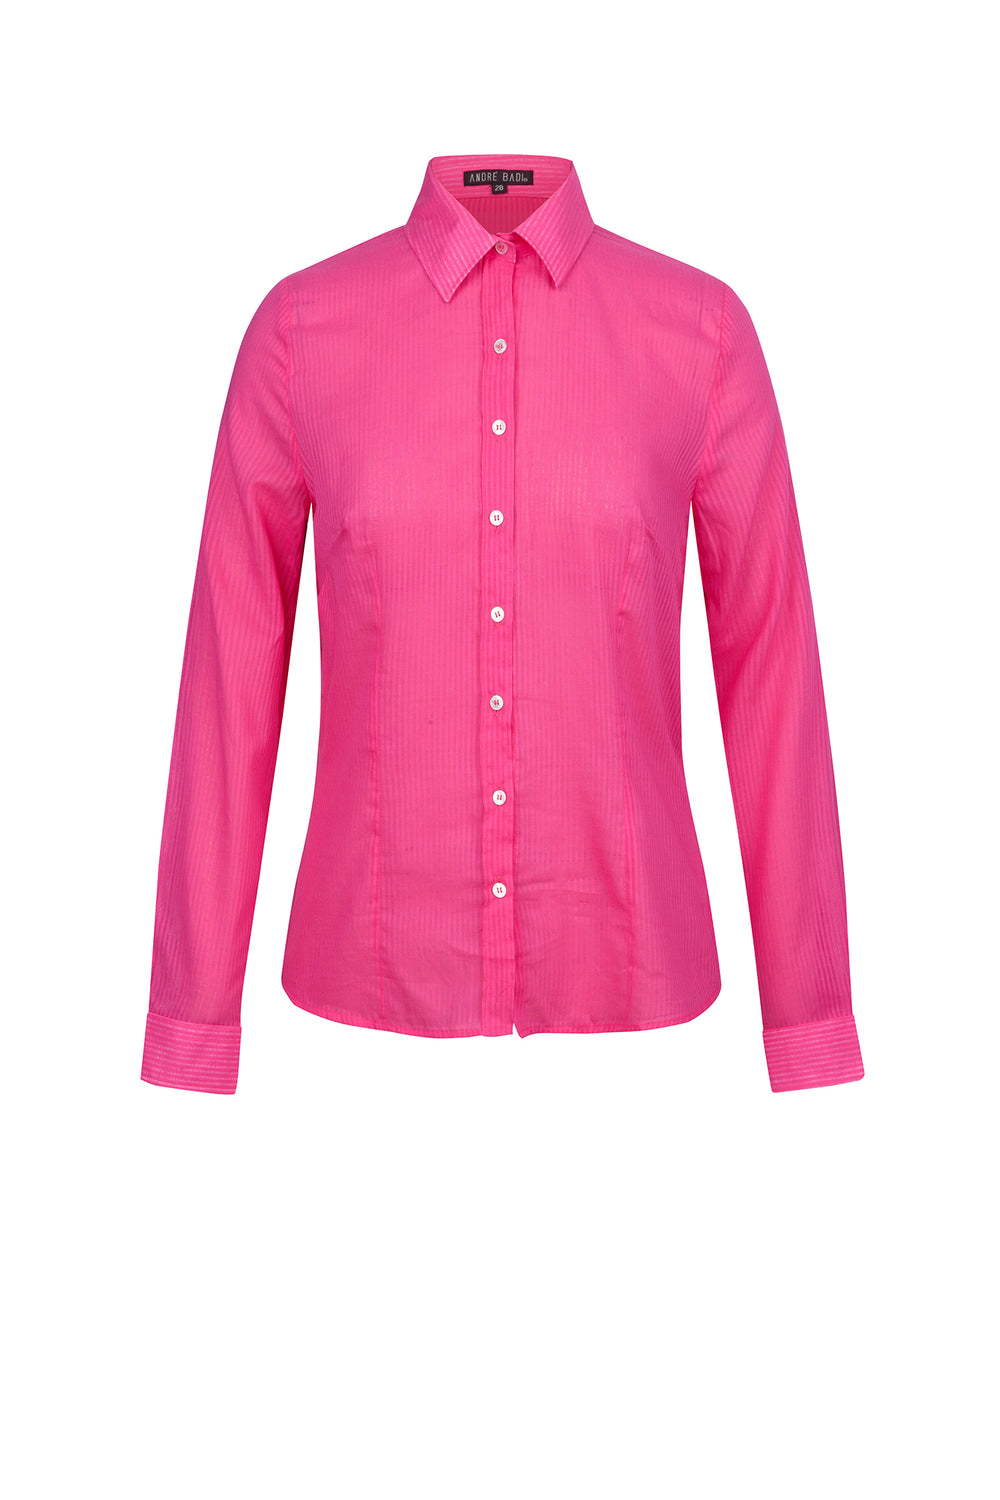 FUCSIA POP - P263